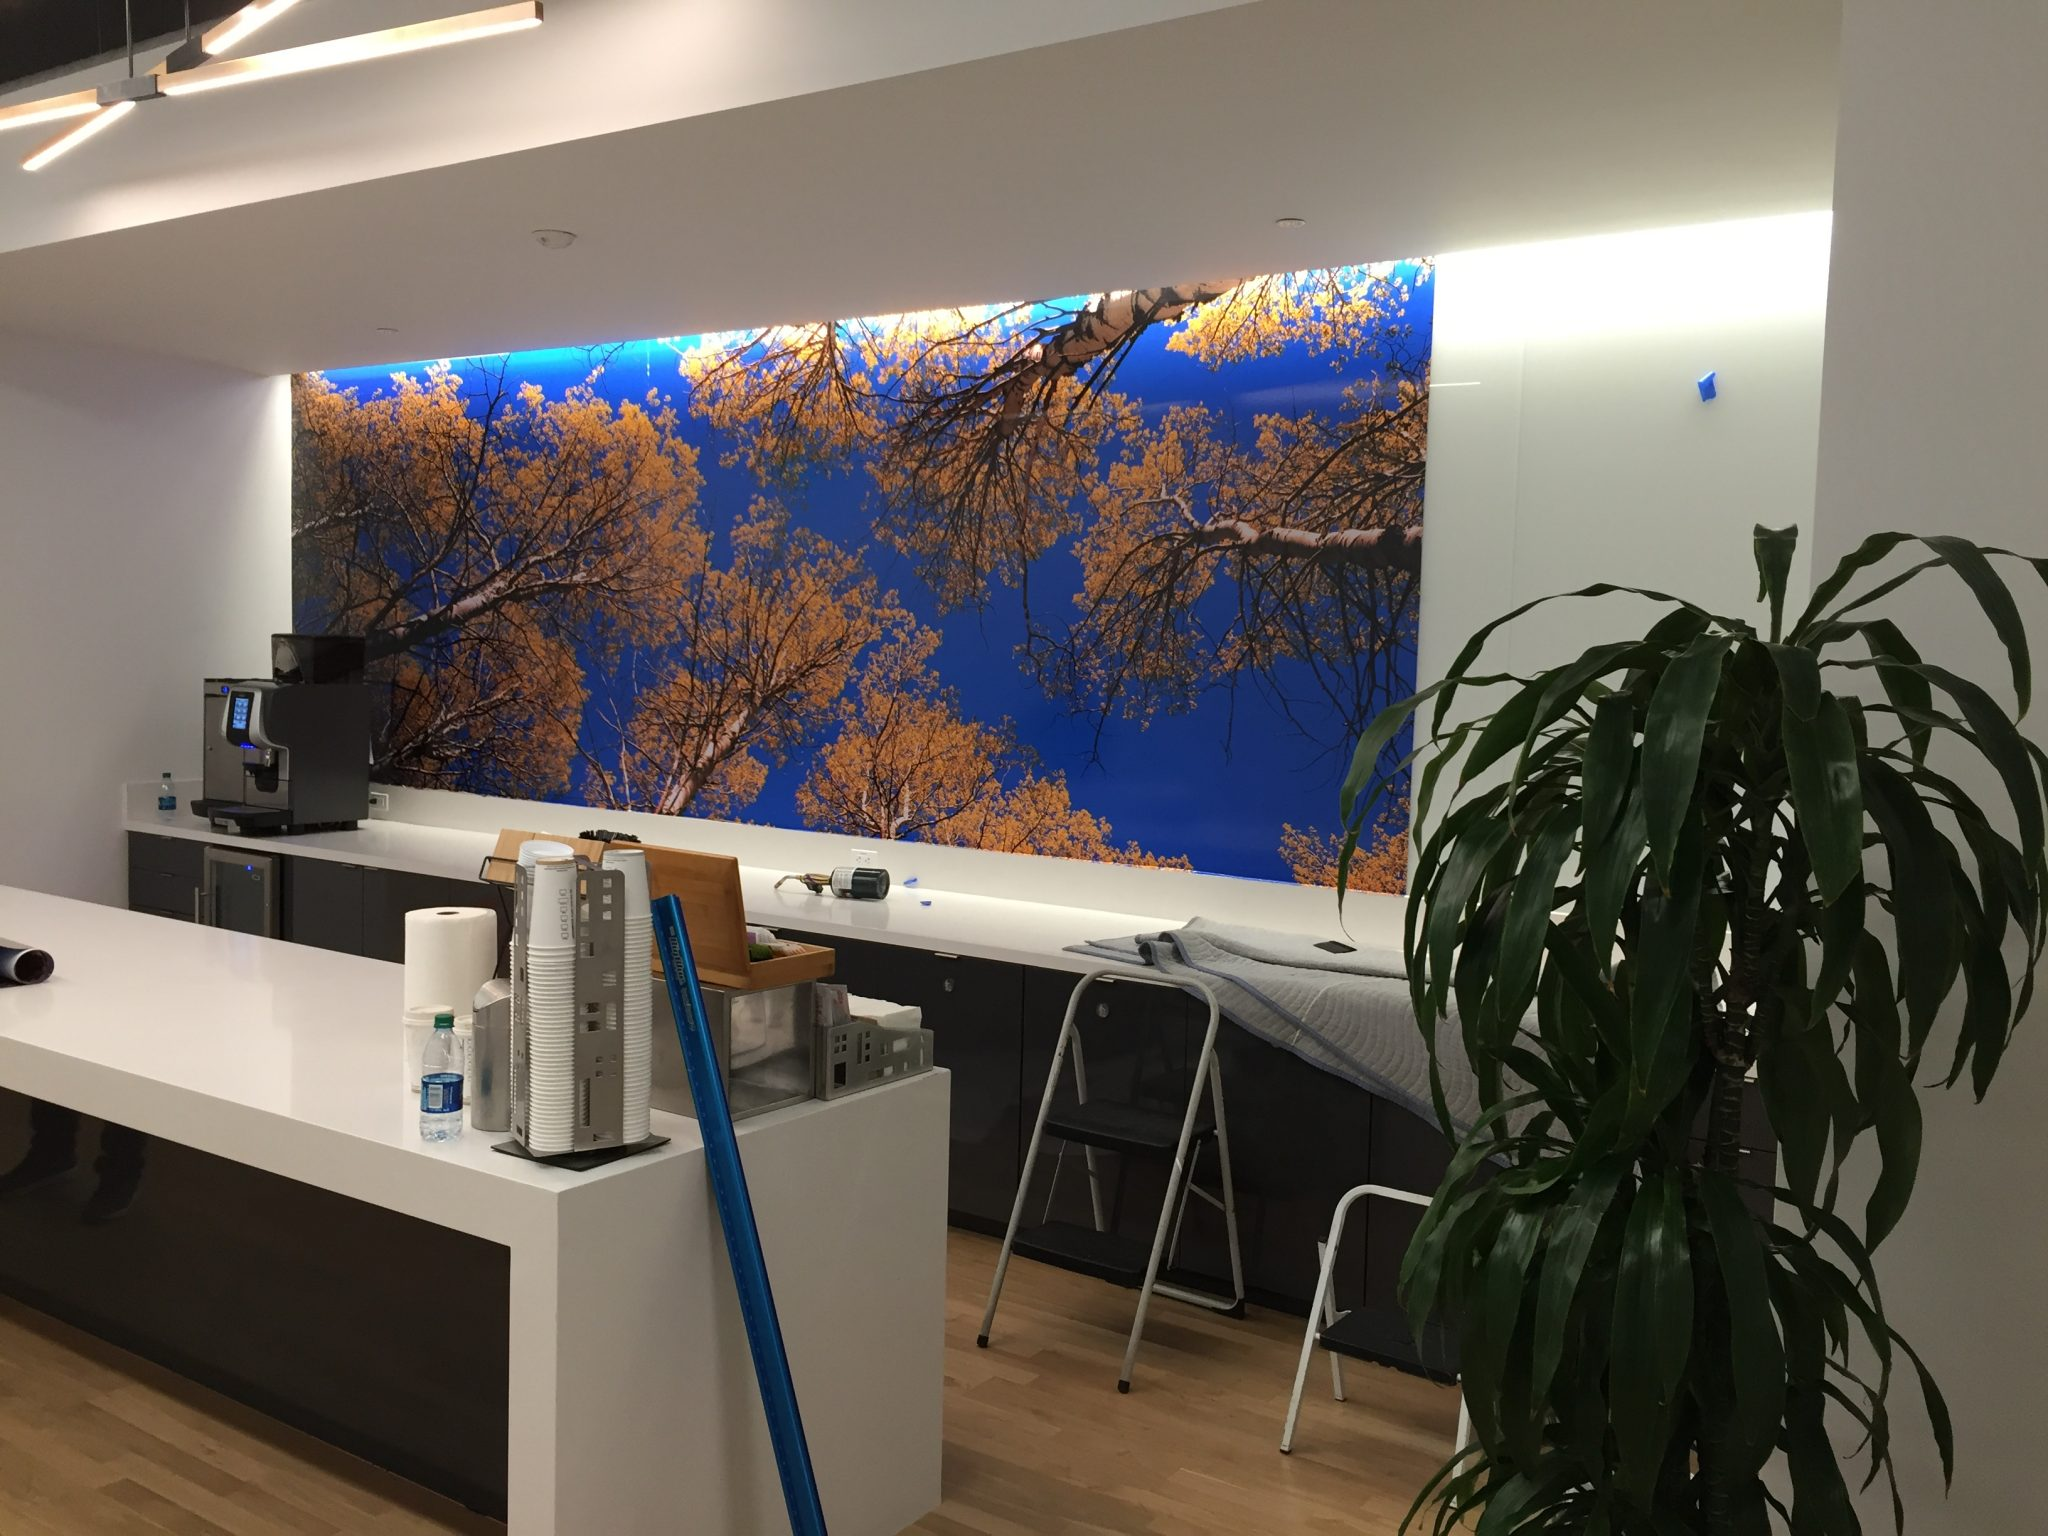 ... there will be creases, small rips, or bubbles that might make the mural appear unprofessional. If a Engaging Signs & Graphics installer places your ...